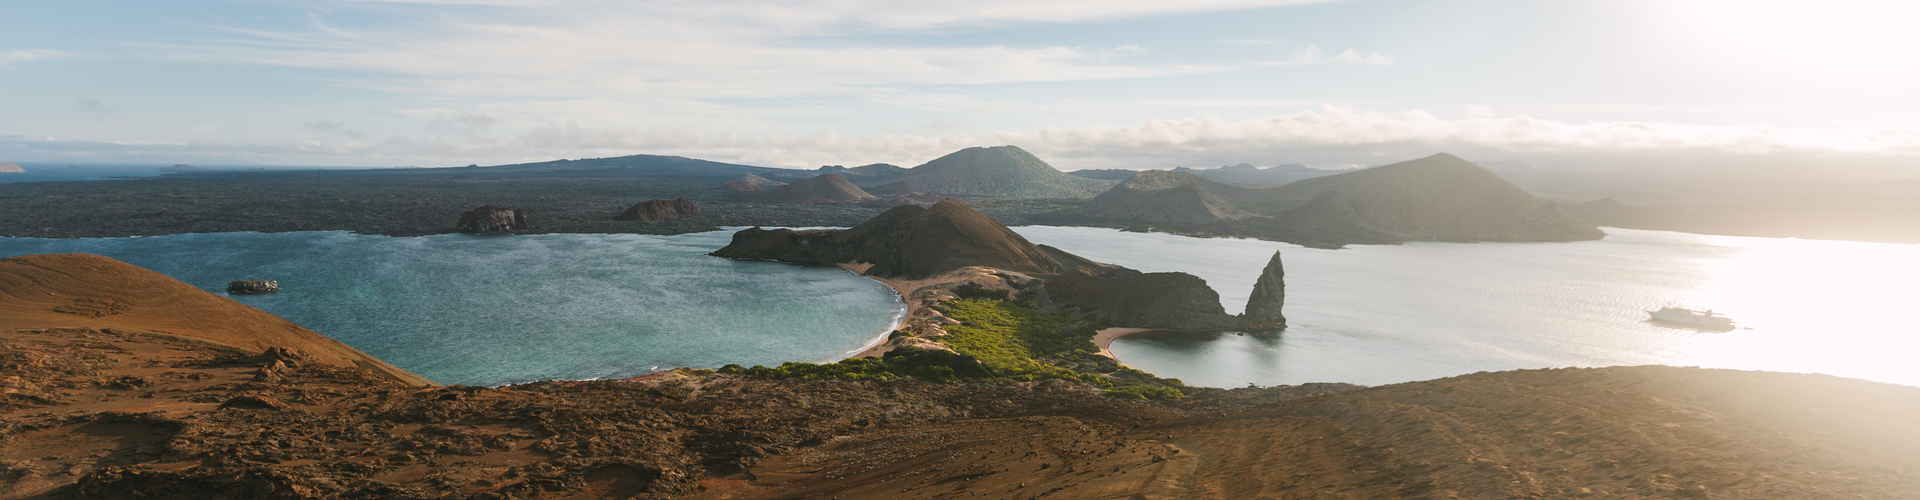 Classic Galapagos: Central Eastern Islands (Grand Queen Beatriz)